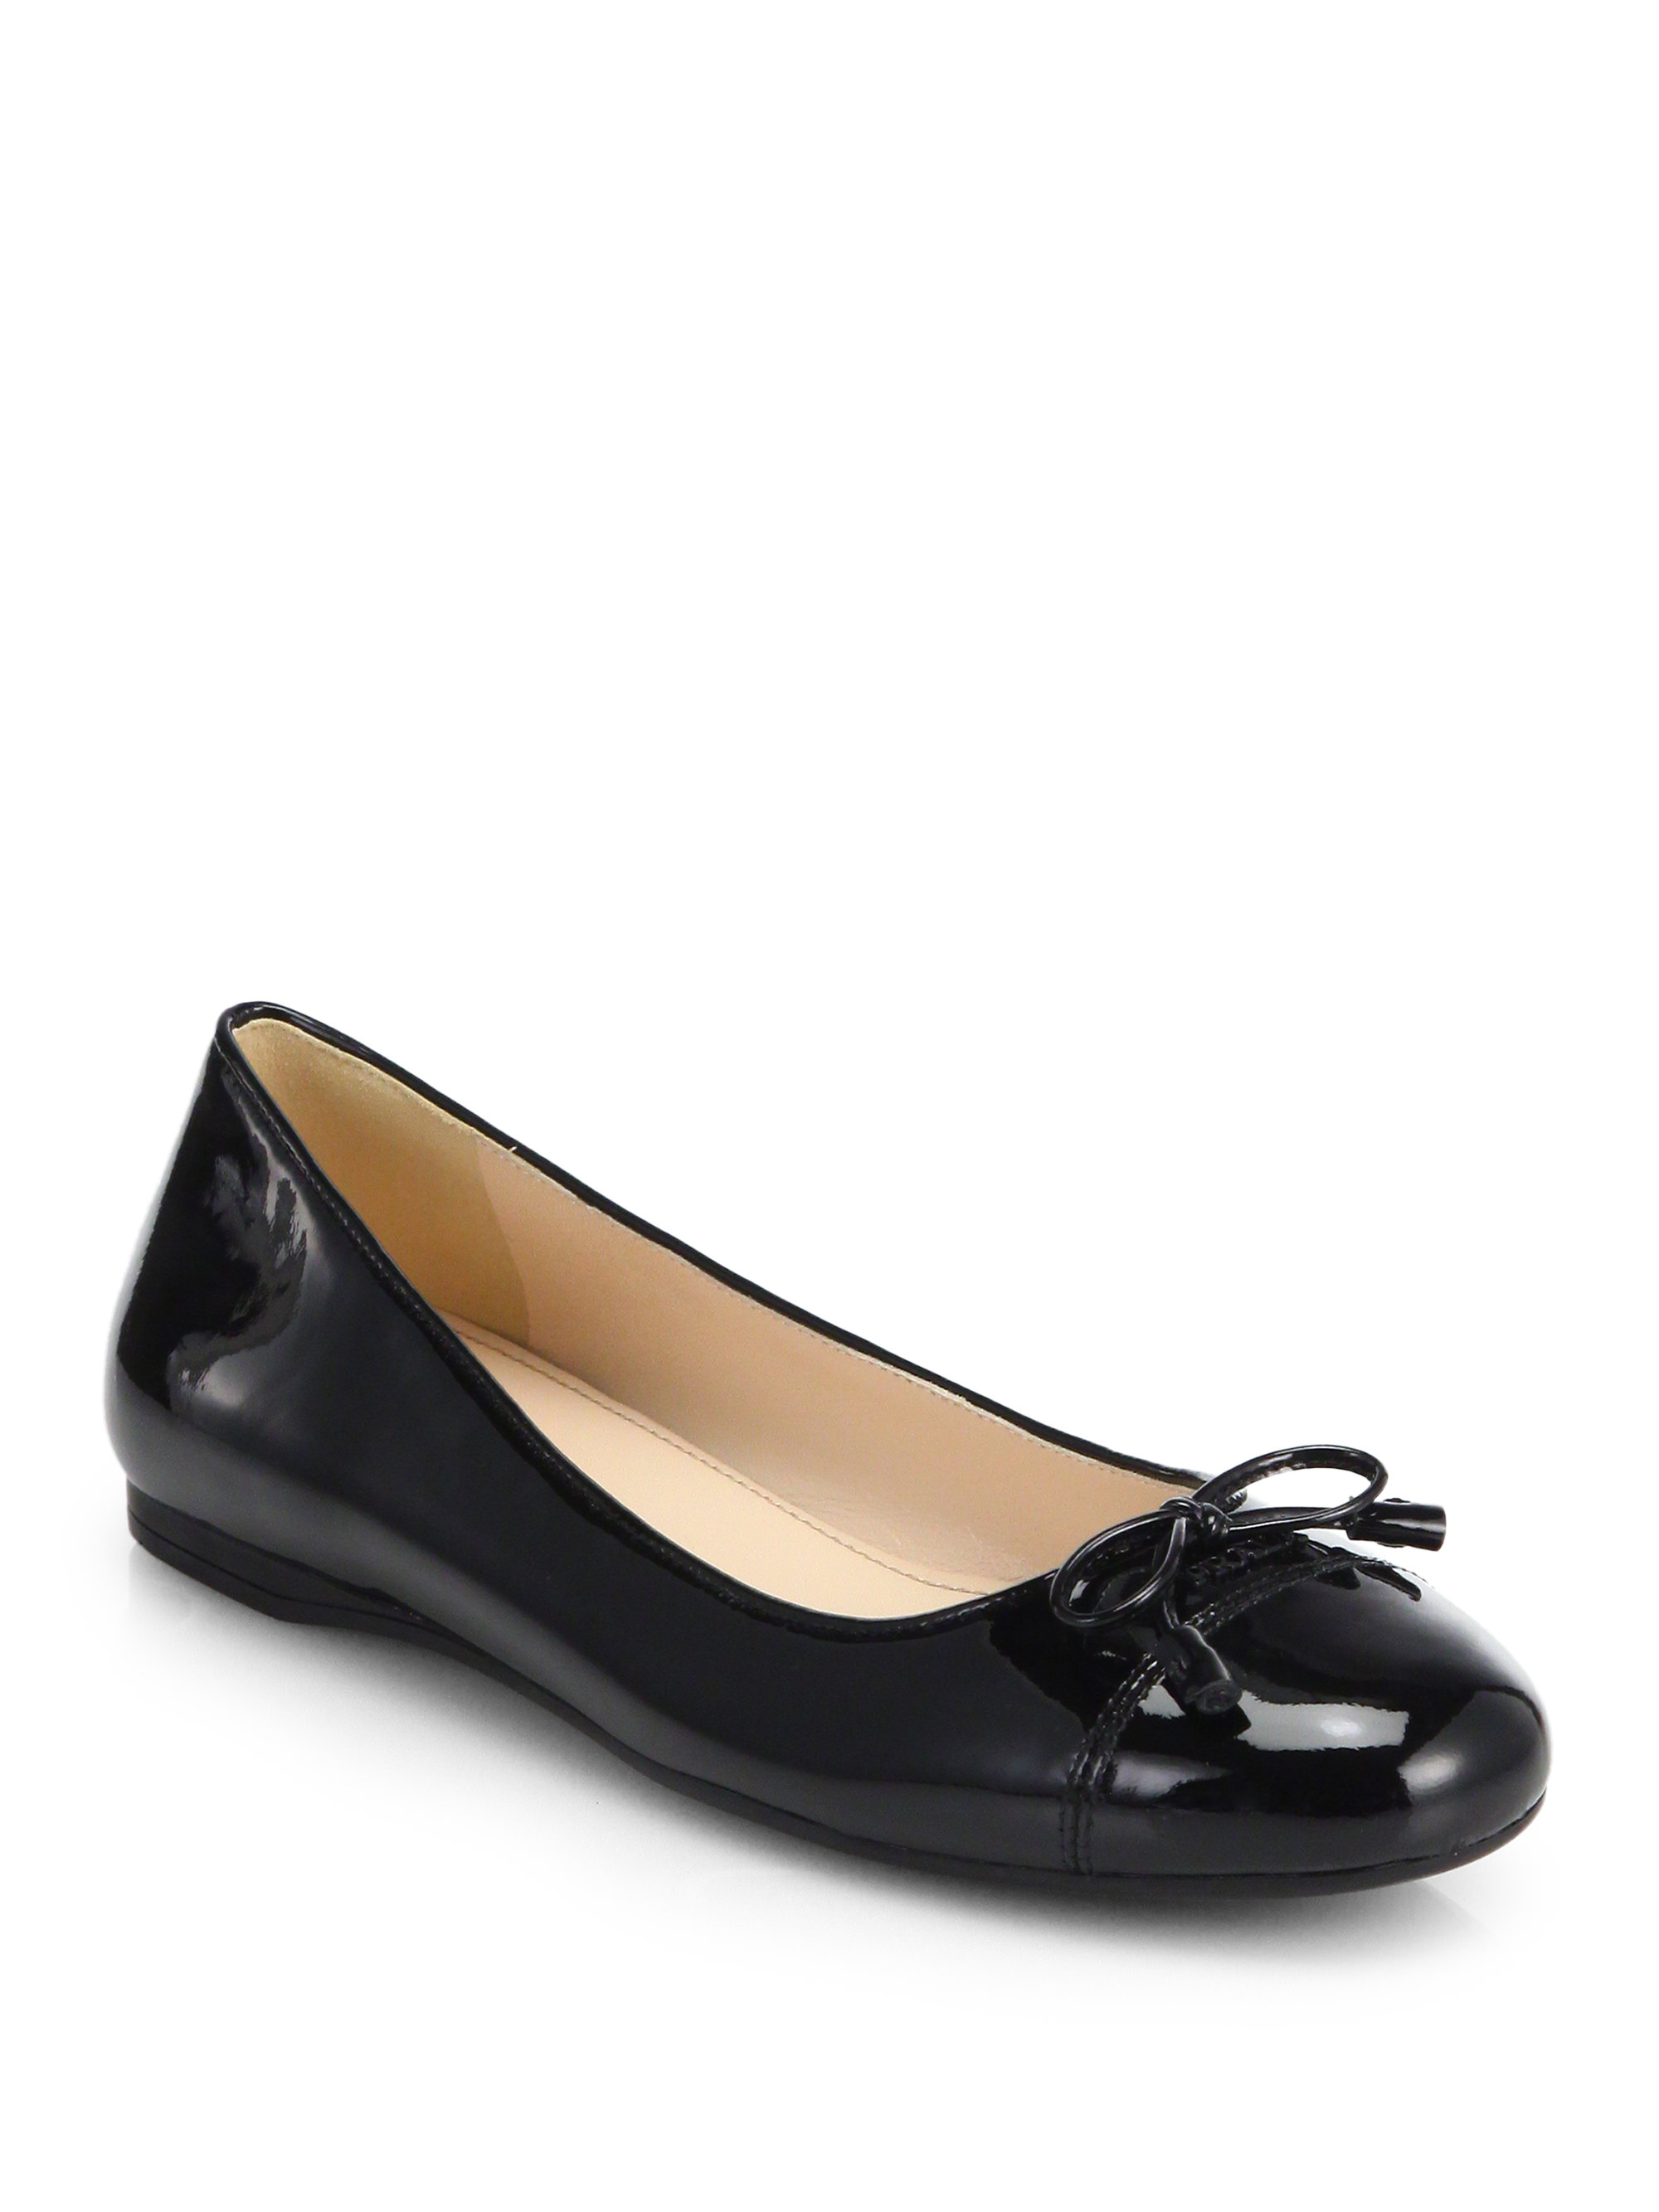 Free shipping BOTH ways on black patent ballet flats, from our vast selection of styles. Fast delivery, and 24/7/ real-person service with a smile. Click or call